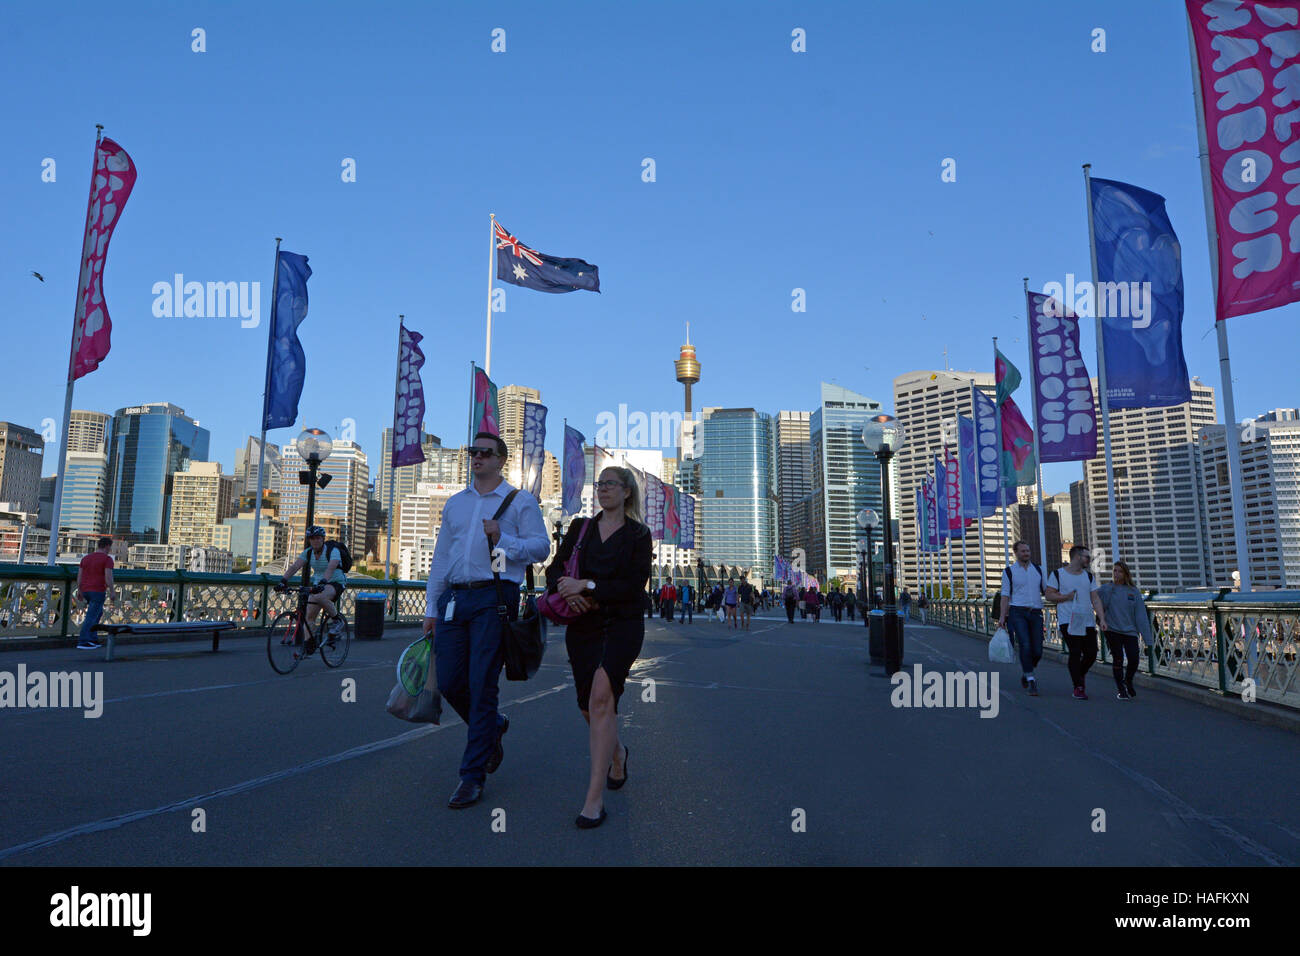 SYDNEY - OCT 20 2016:Visitors crossing the Pyrmont Bridge at sunset in Darling Harbour, a recreational and pedestrian - Stock Image